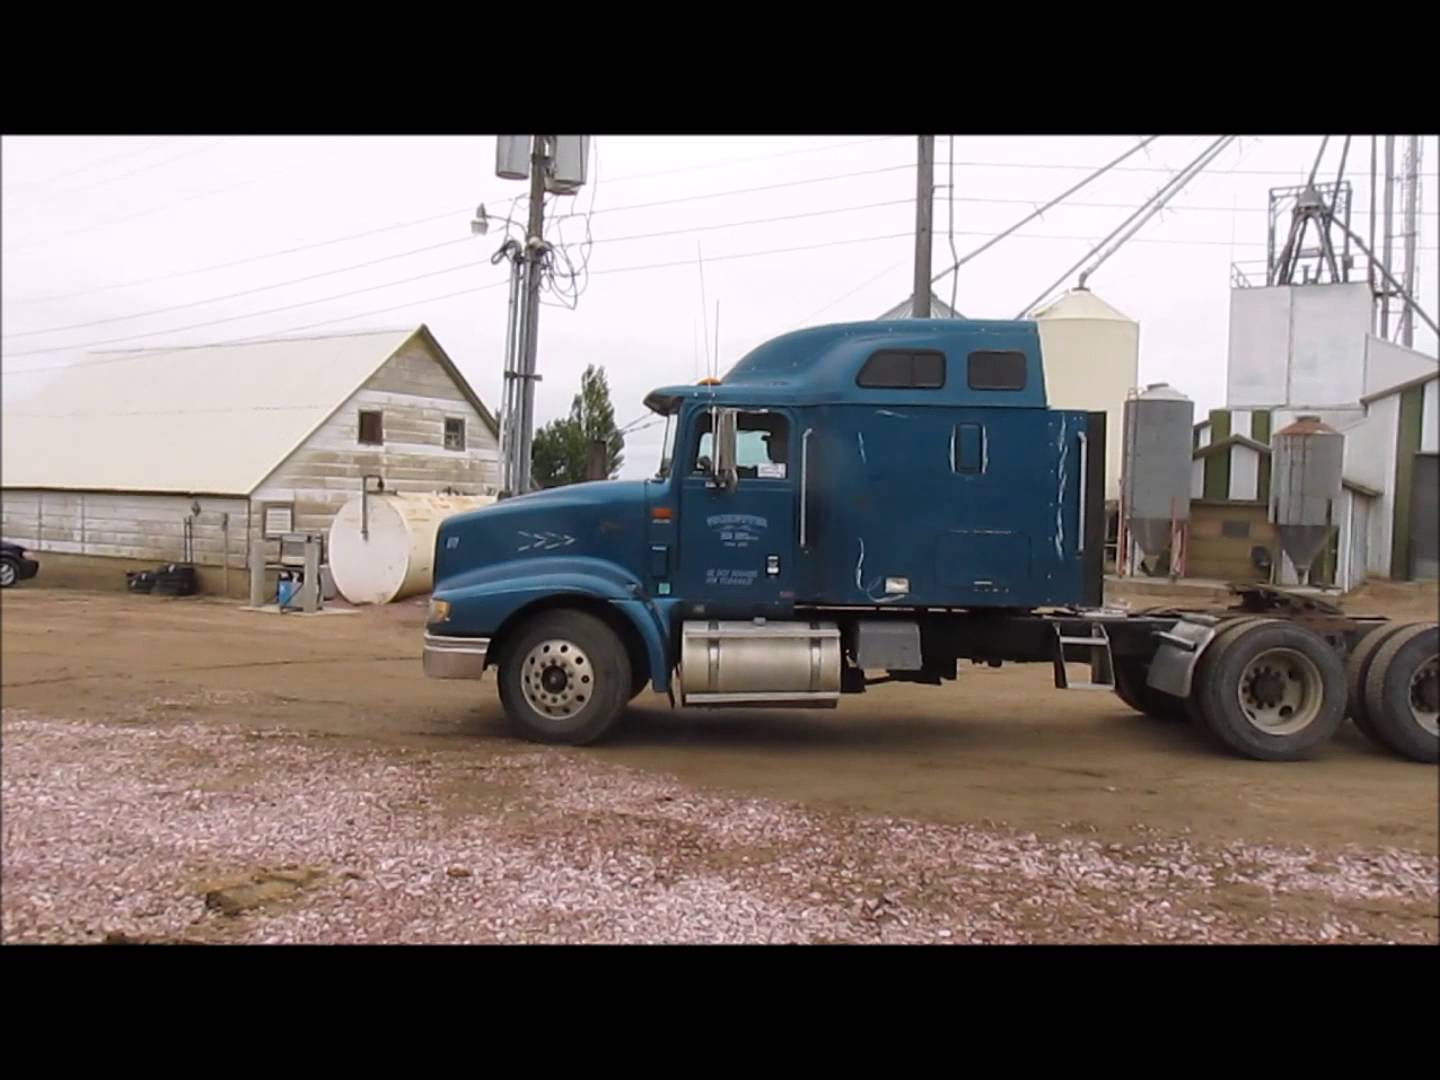 2000 International 9400 Eagle semi truck for sale | sold at auction October 22, 2014